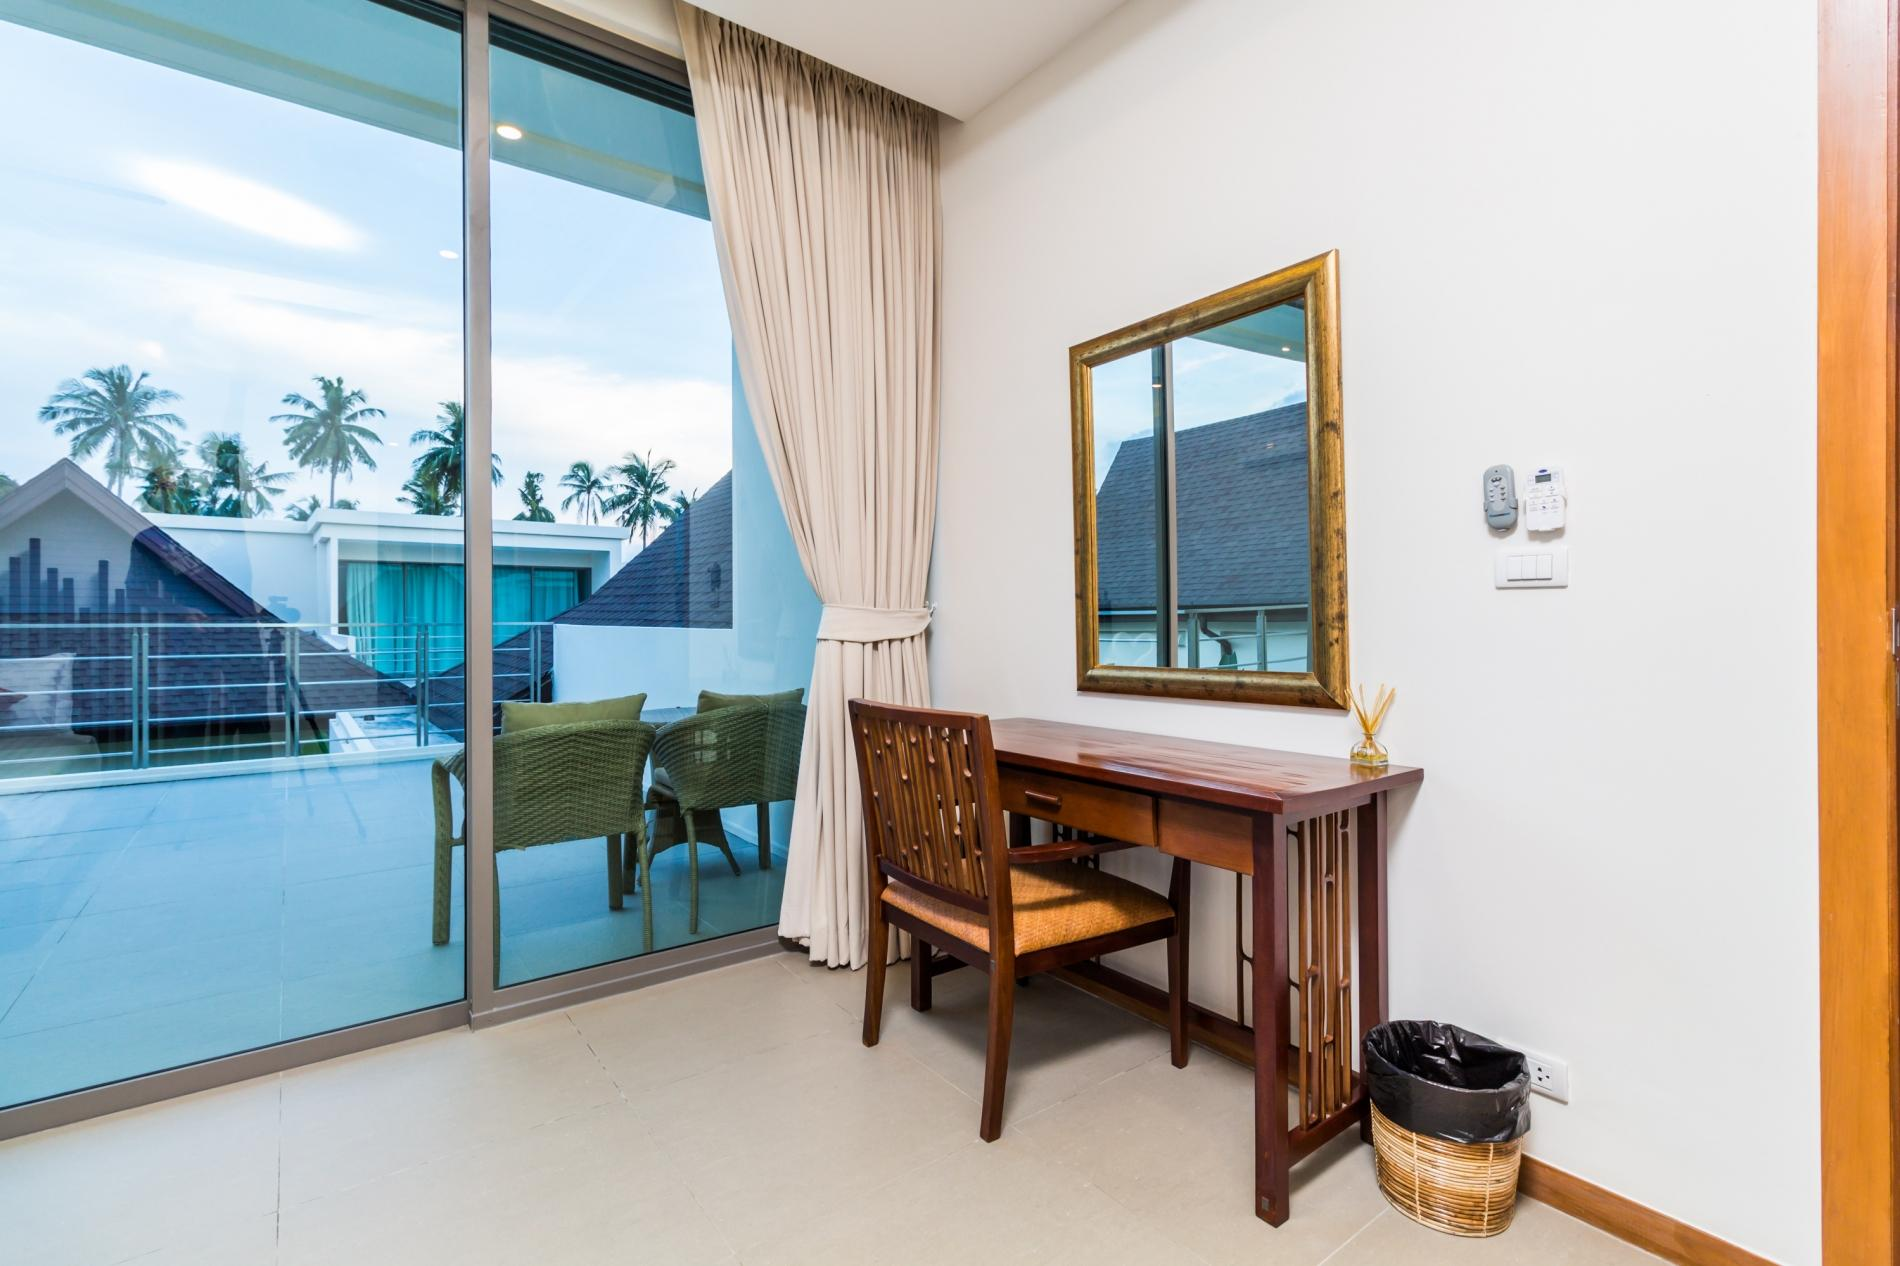 Apartment Ka Villa - Private pool villa near seafood market and beach photo 16965831